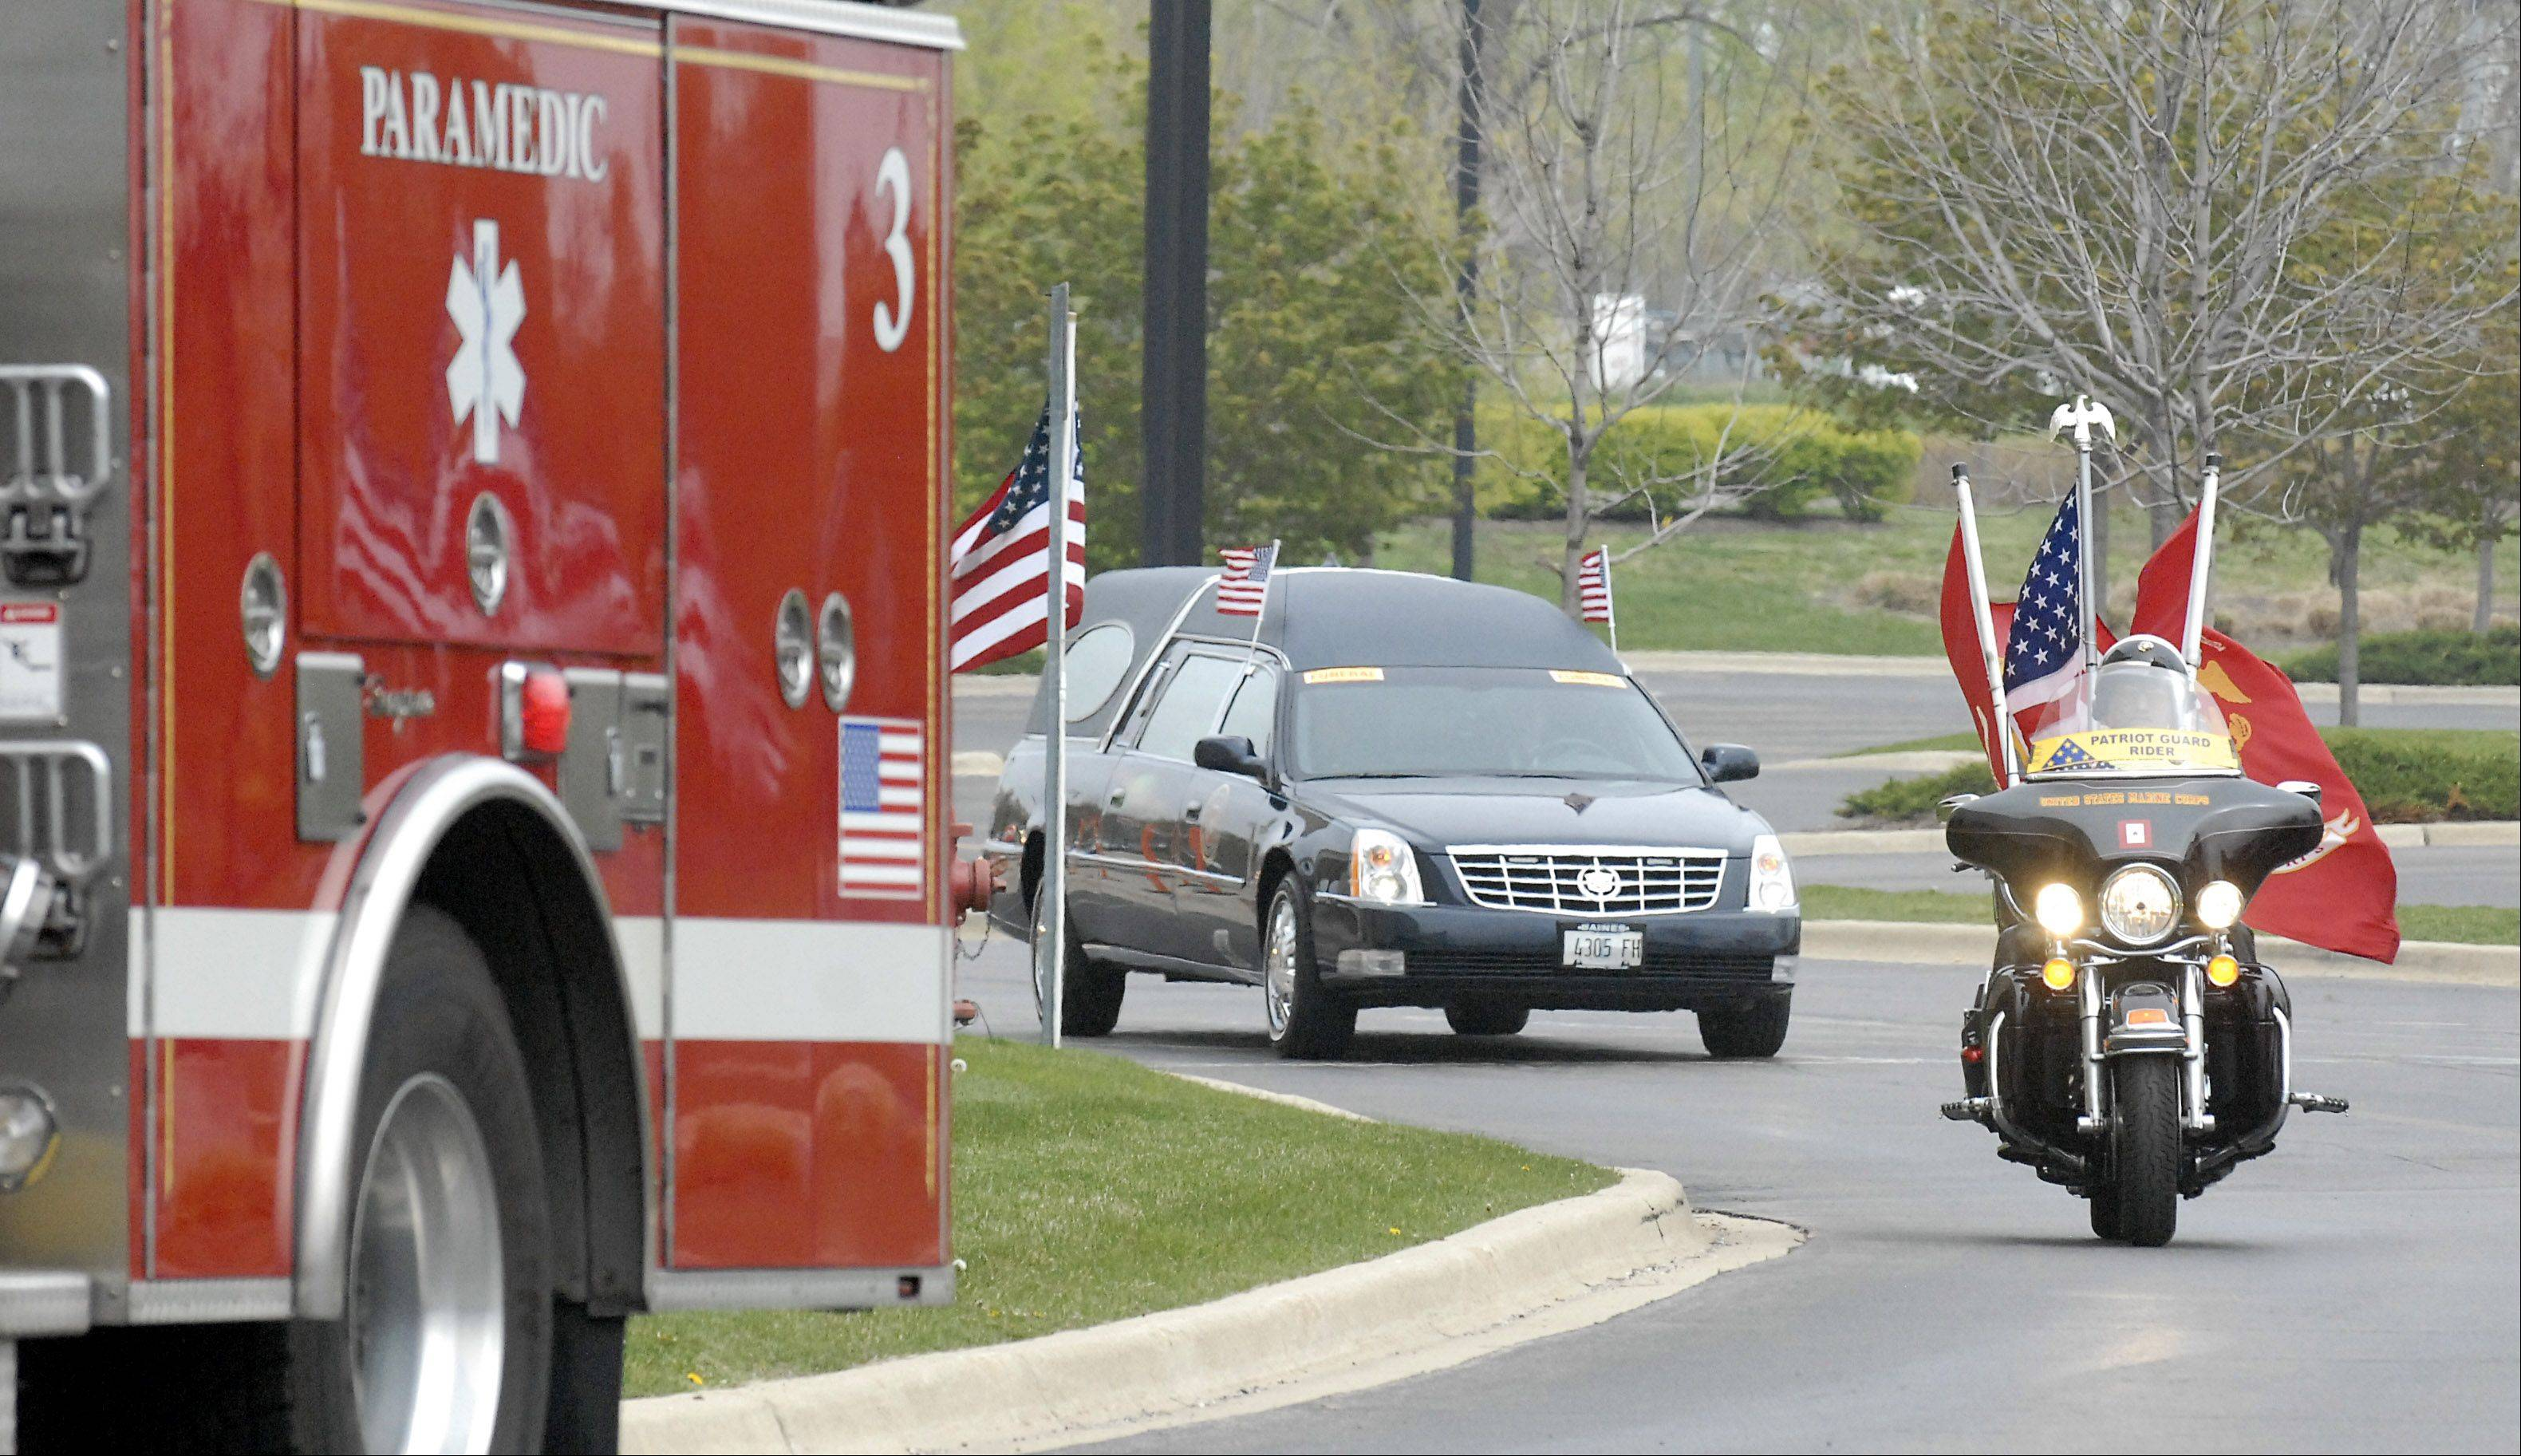 More than 400 attend funeral for Elgin Marine